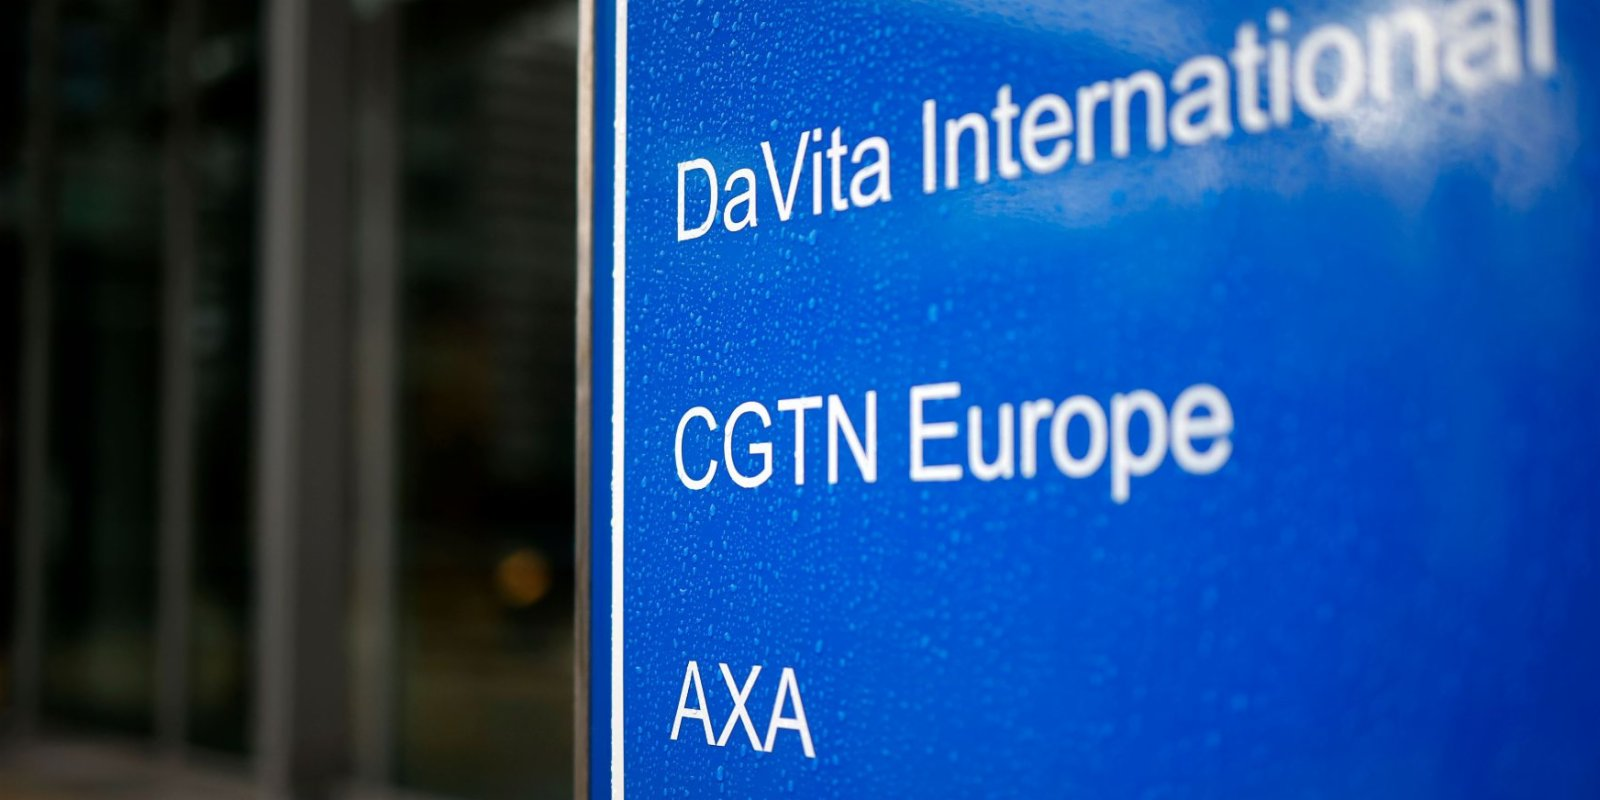 CGTN regains right to broadcast in the UK